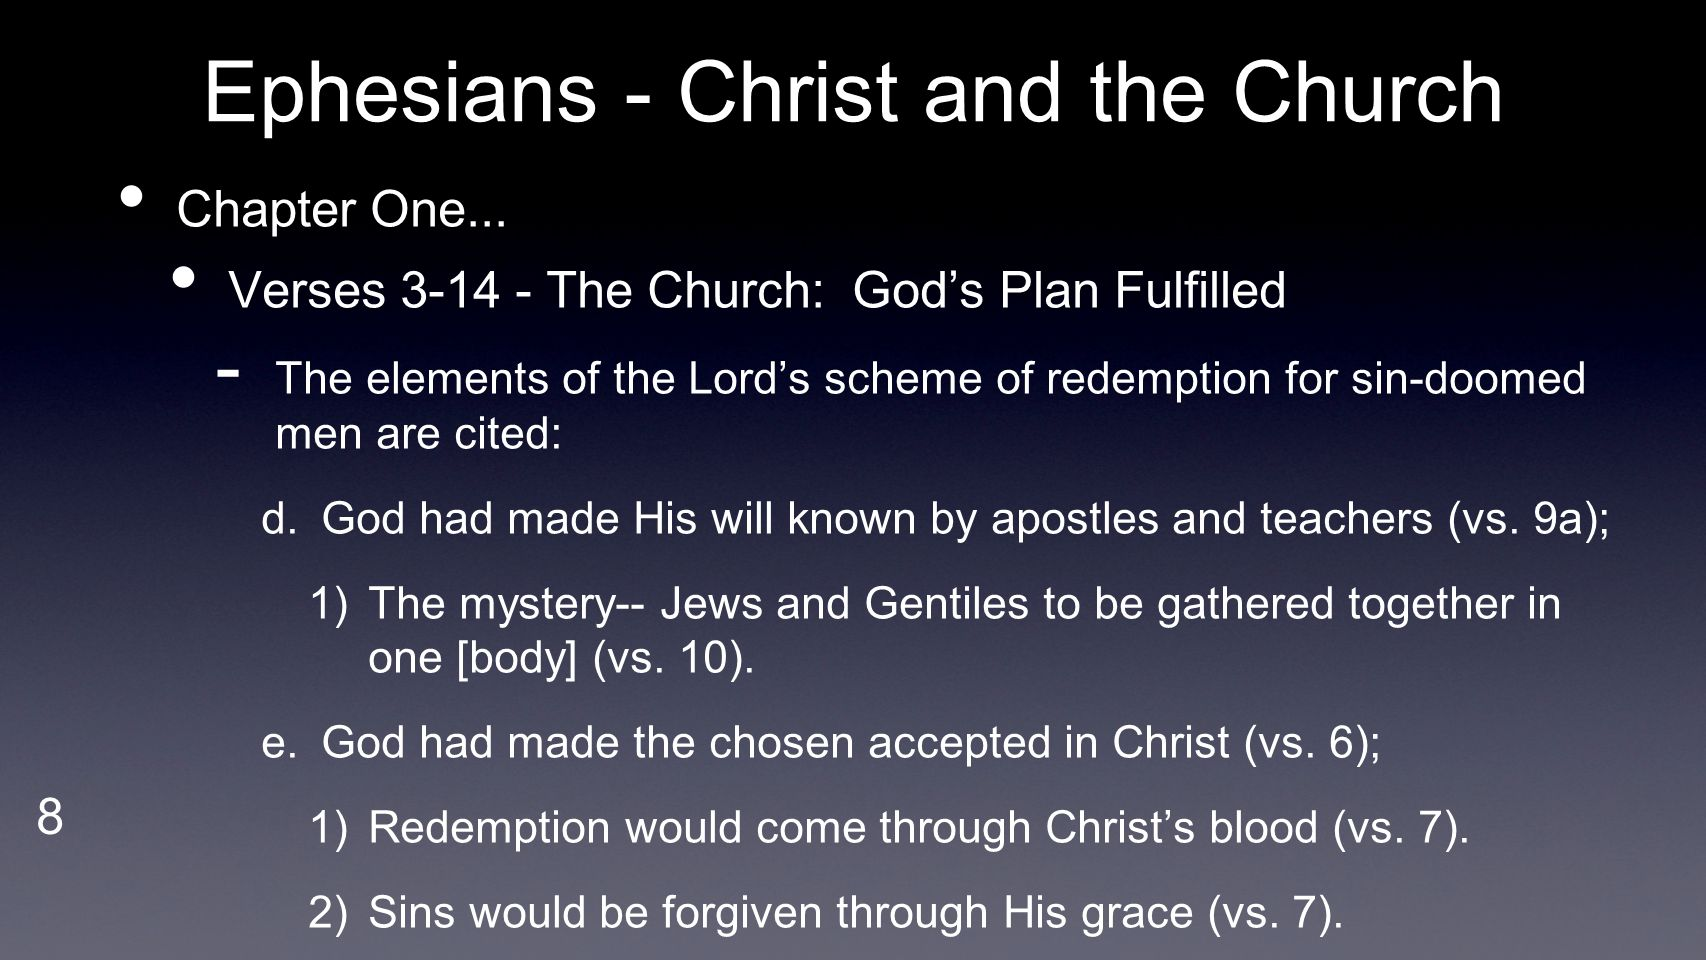 9 Ephesians - Christ and the Church Chapter One...